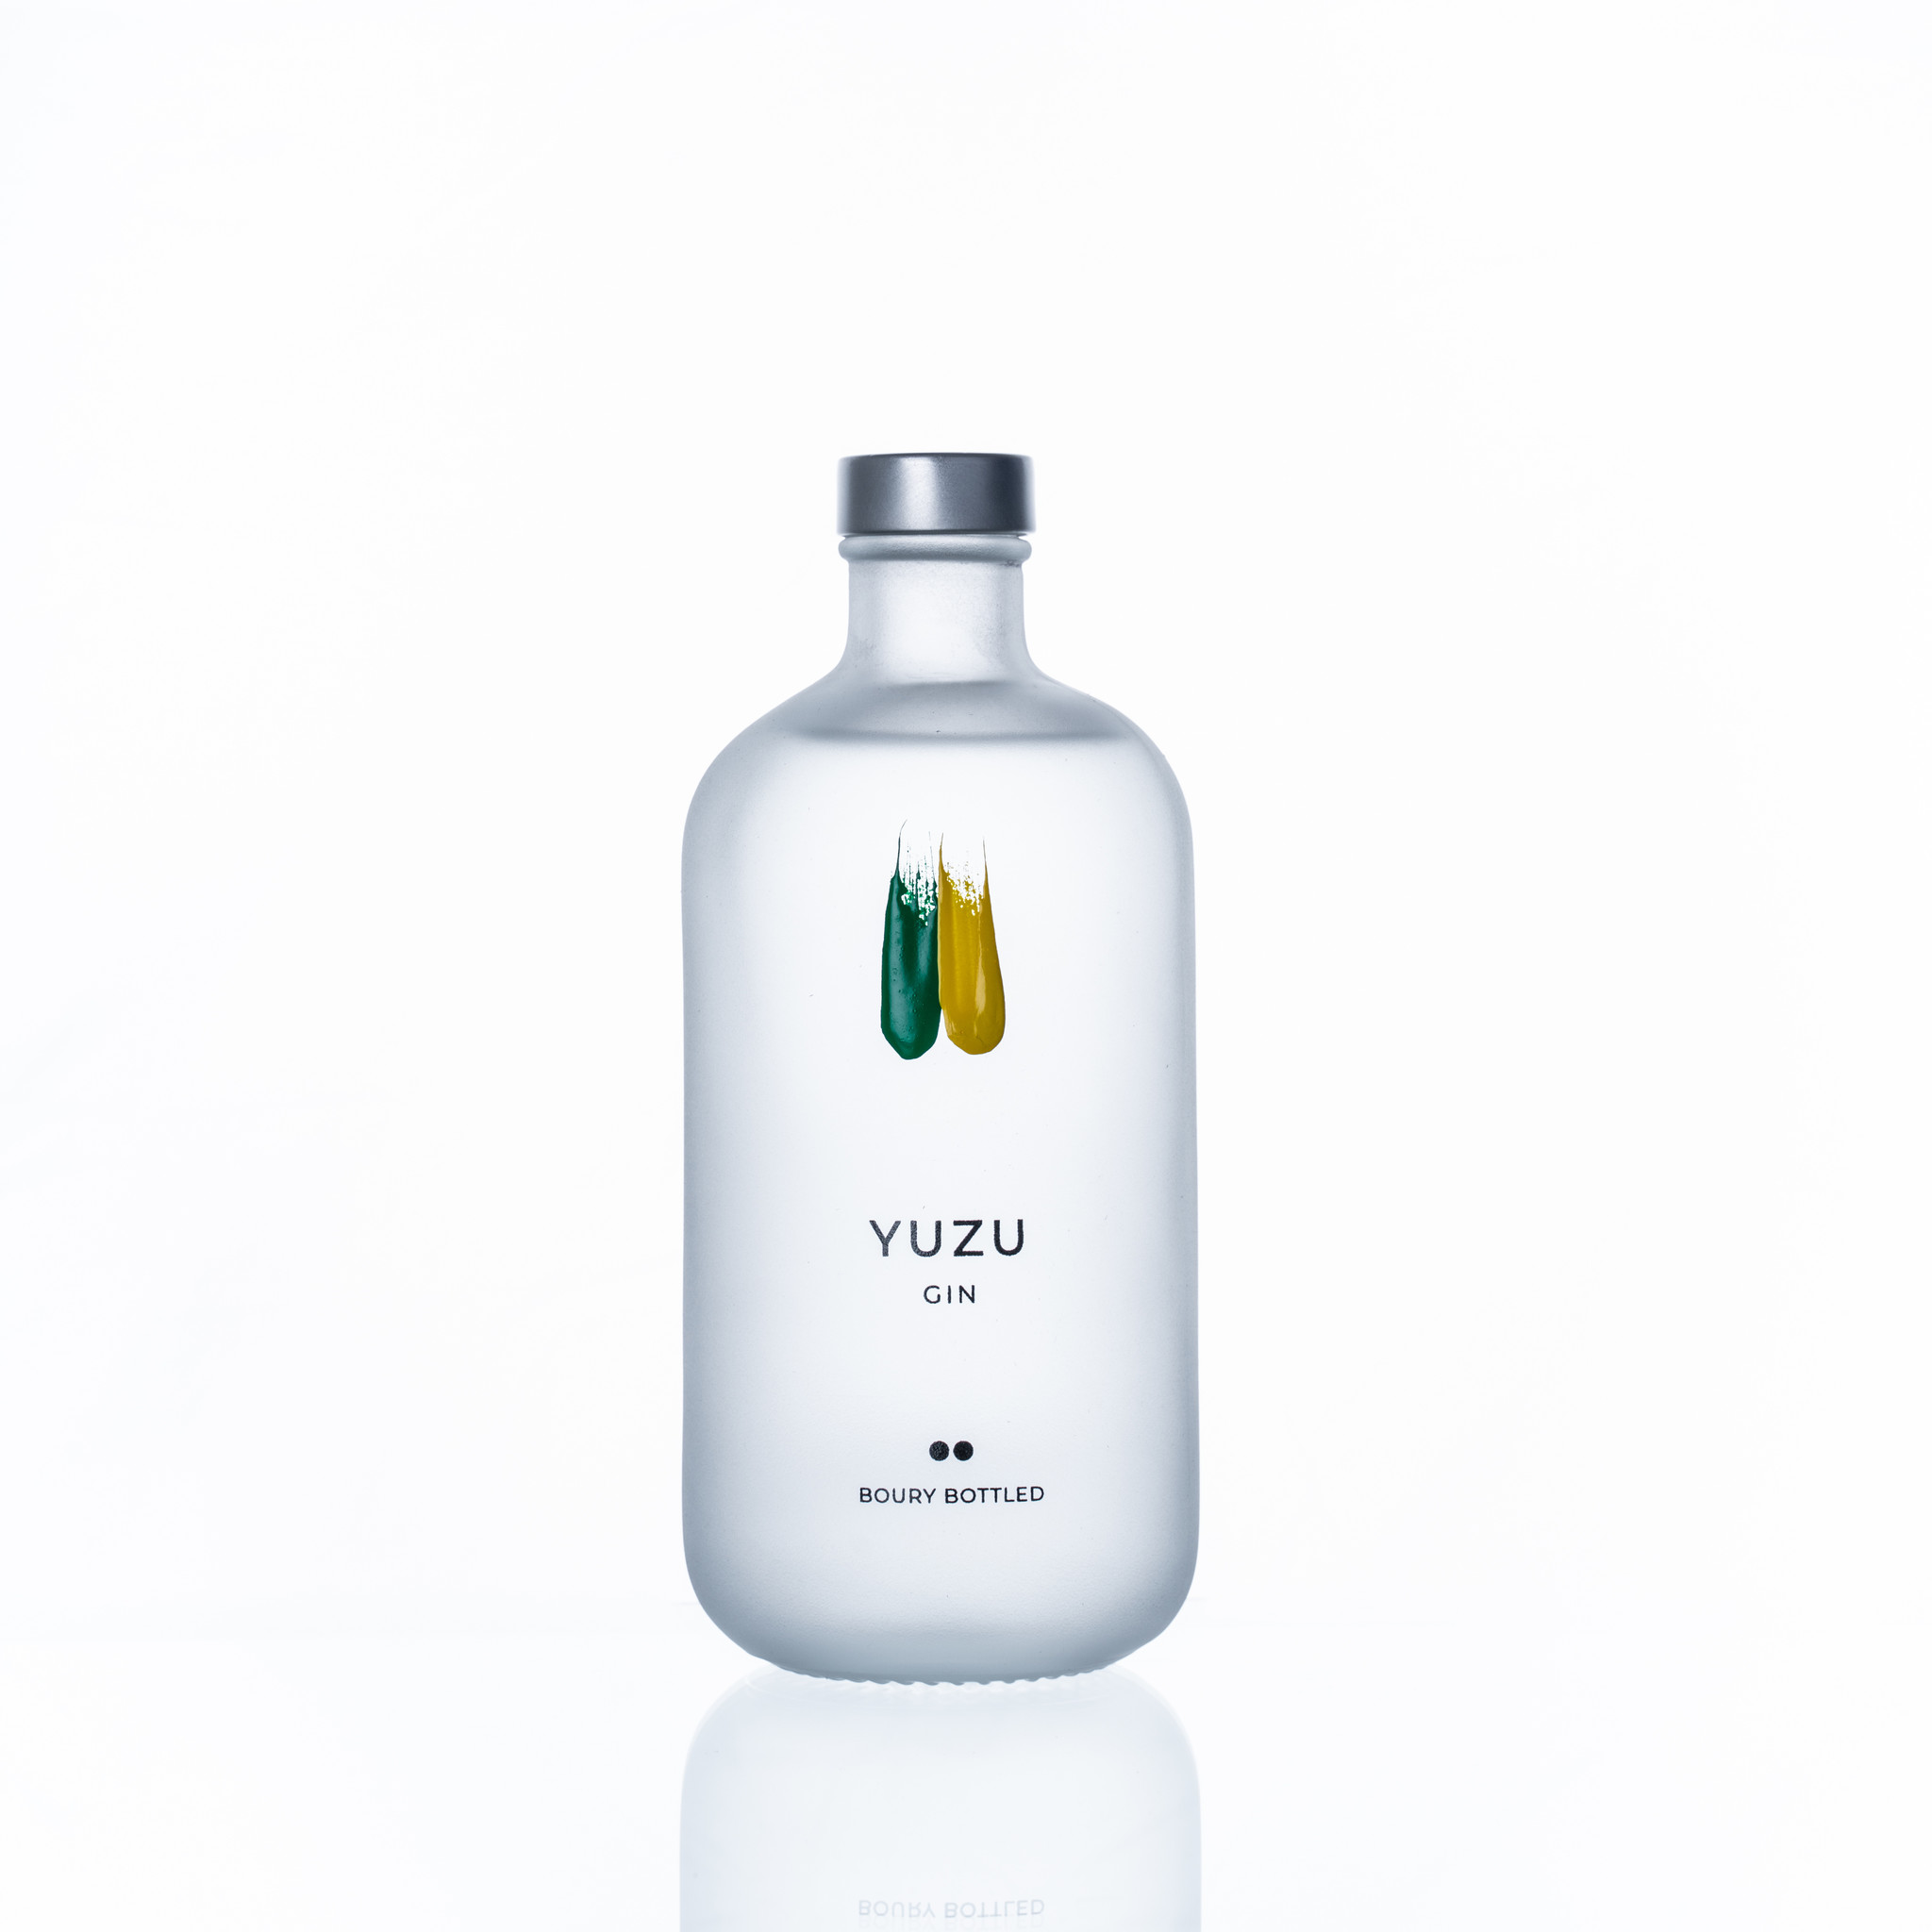 Boury Bottled Yuzu Gin by Tim Boury **